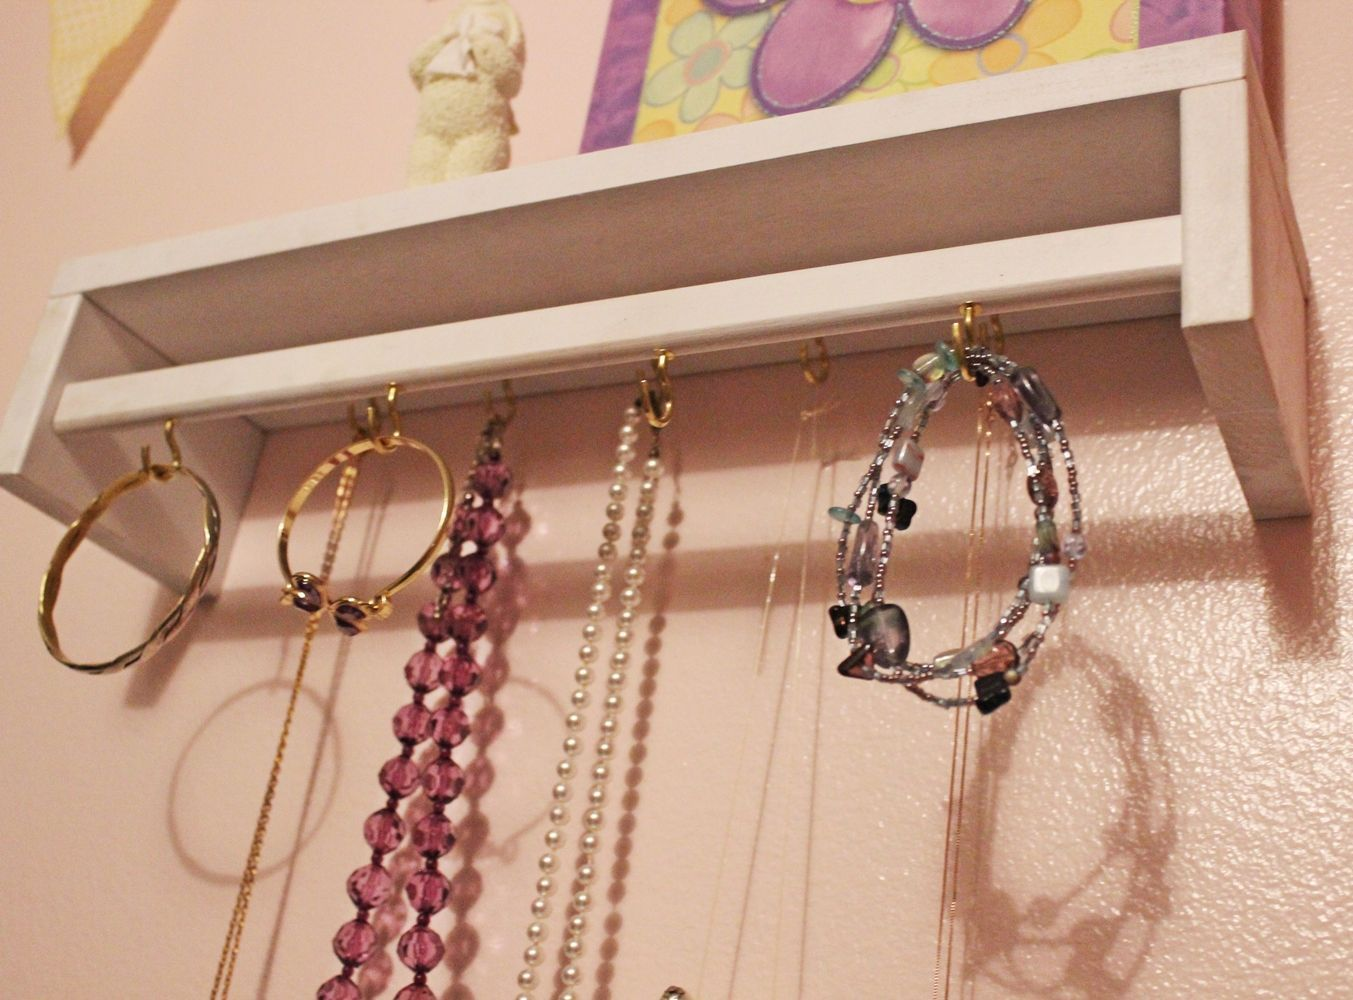 DIY Jewelry Holder Out Of Spice Rack IKEA Hack